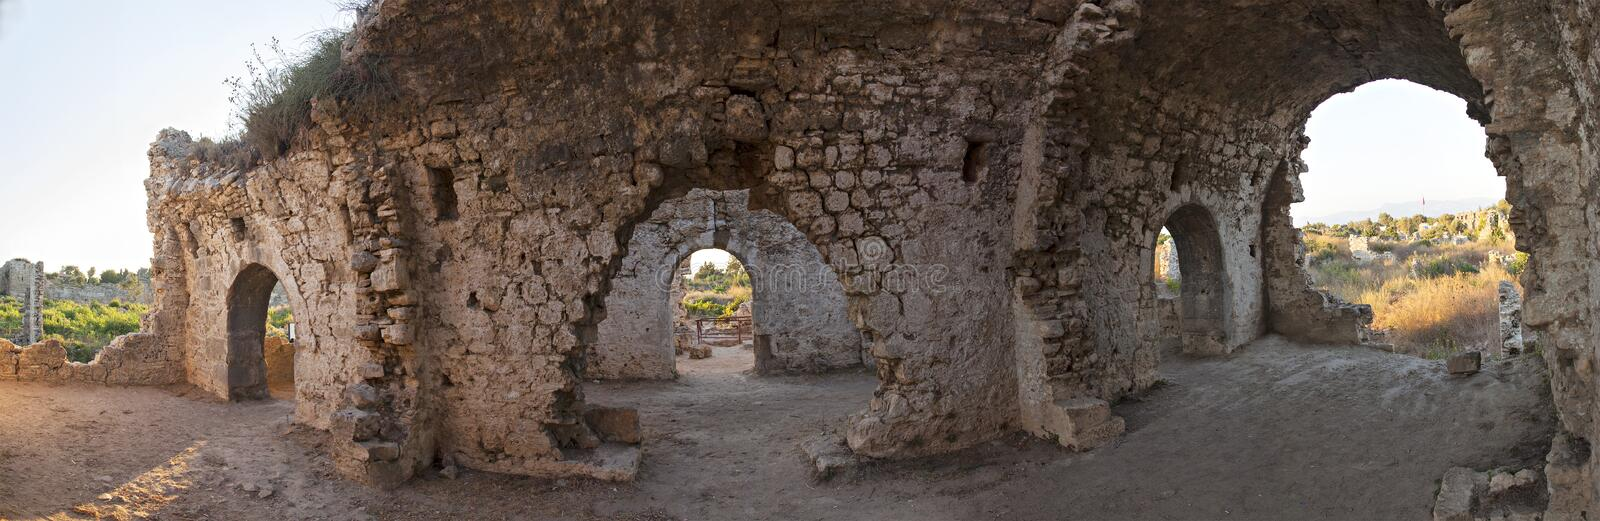 Download Ruins In Ancient Side Stock Photos - Image: 26702783